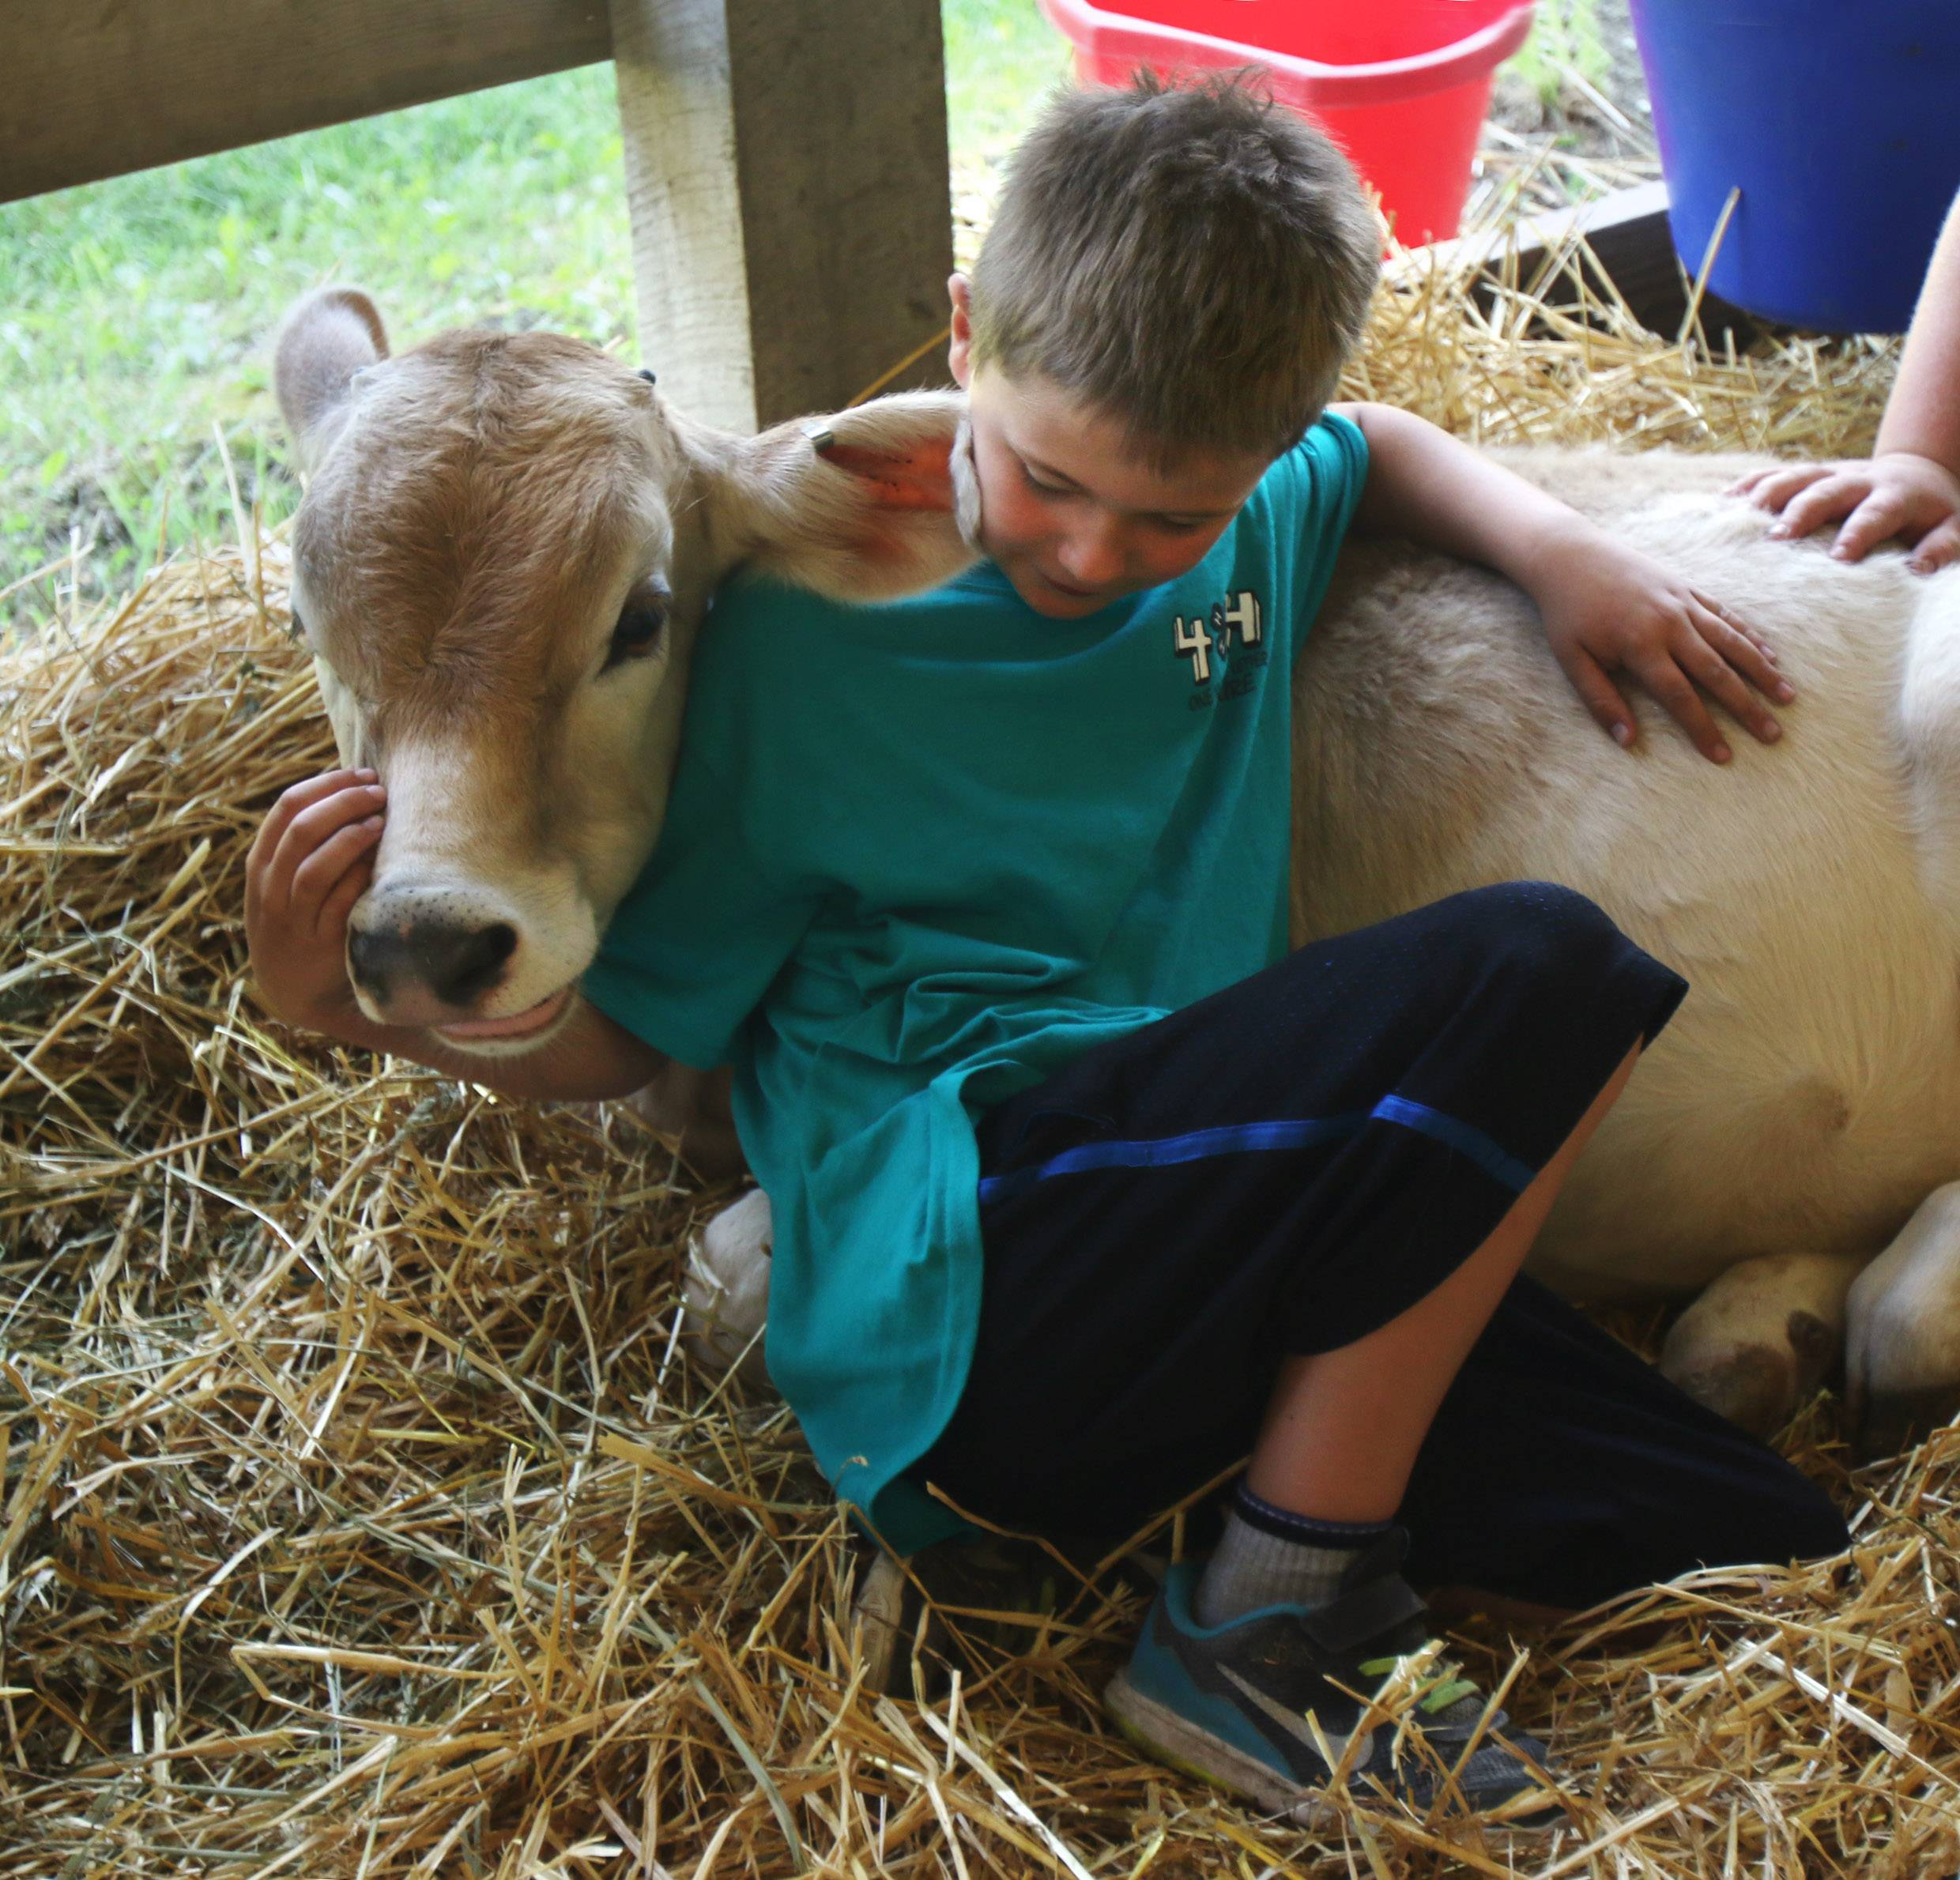 Casey Sramek, 8, of Antioch lays down with his calf during the Lake County Fair on Wednesday at the Lake County Fairgrounds in Grayslake. The first day featured farm animal judging, dog demonstrations, the Lake County beauty pageant, Banana Derby, pig races and motocross.